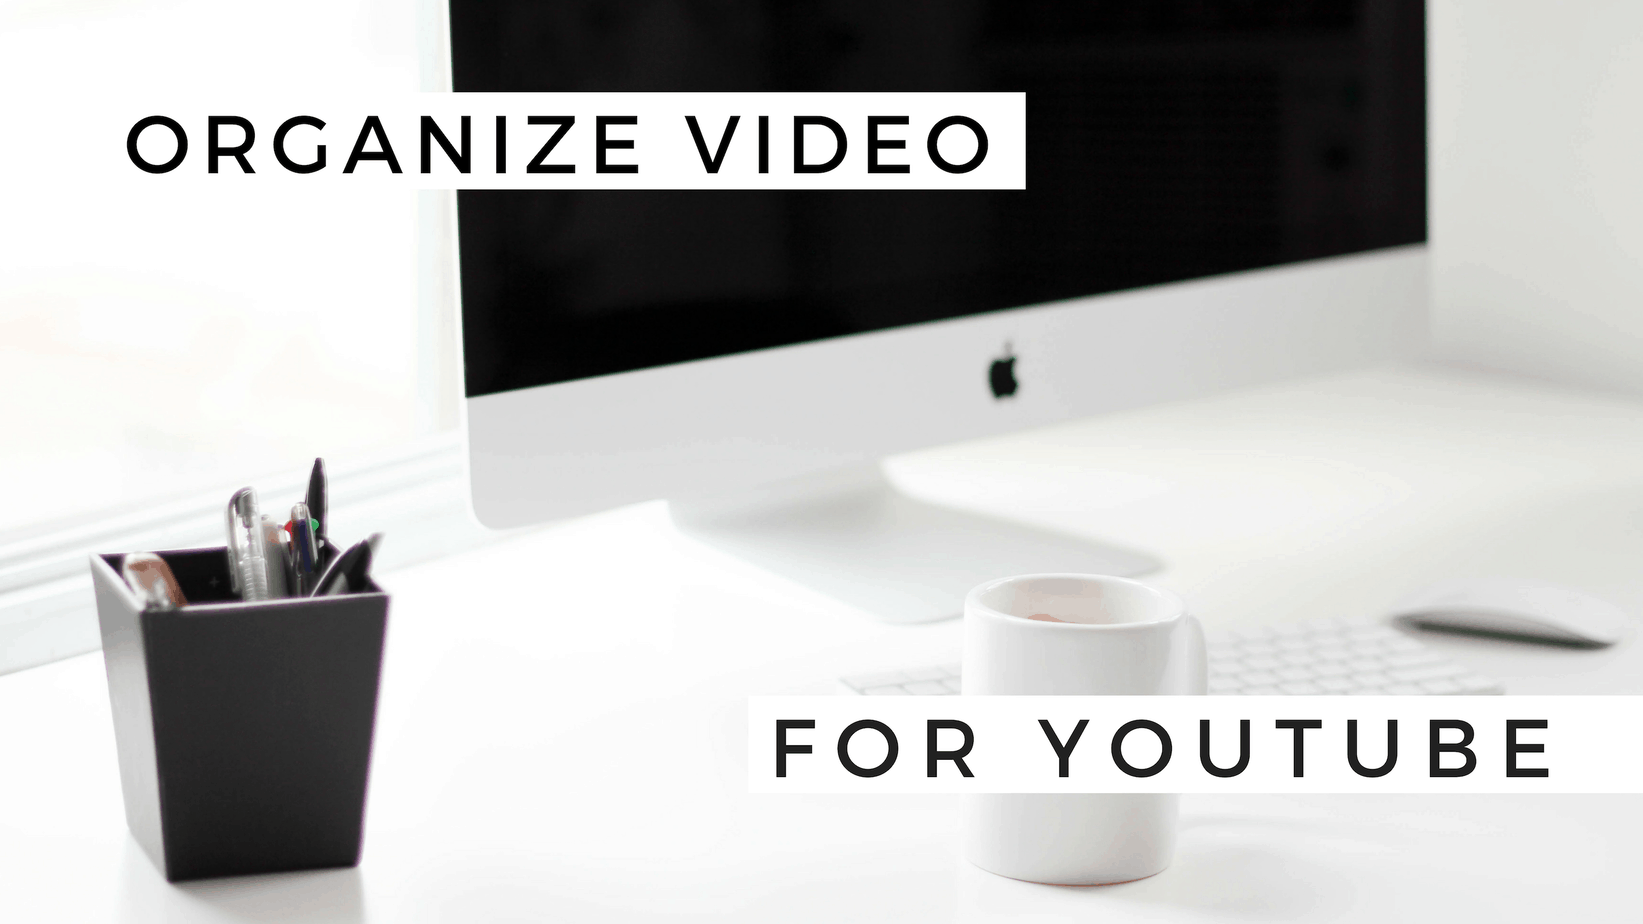 HOW TO ORGANIZE VIDEO FOR YOUTUBE